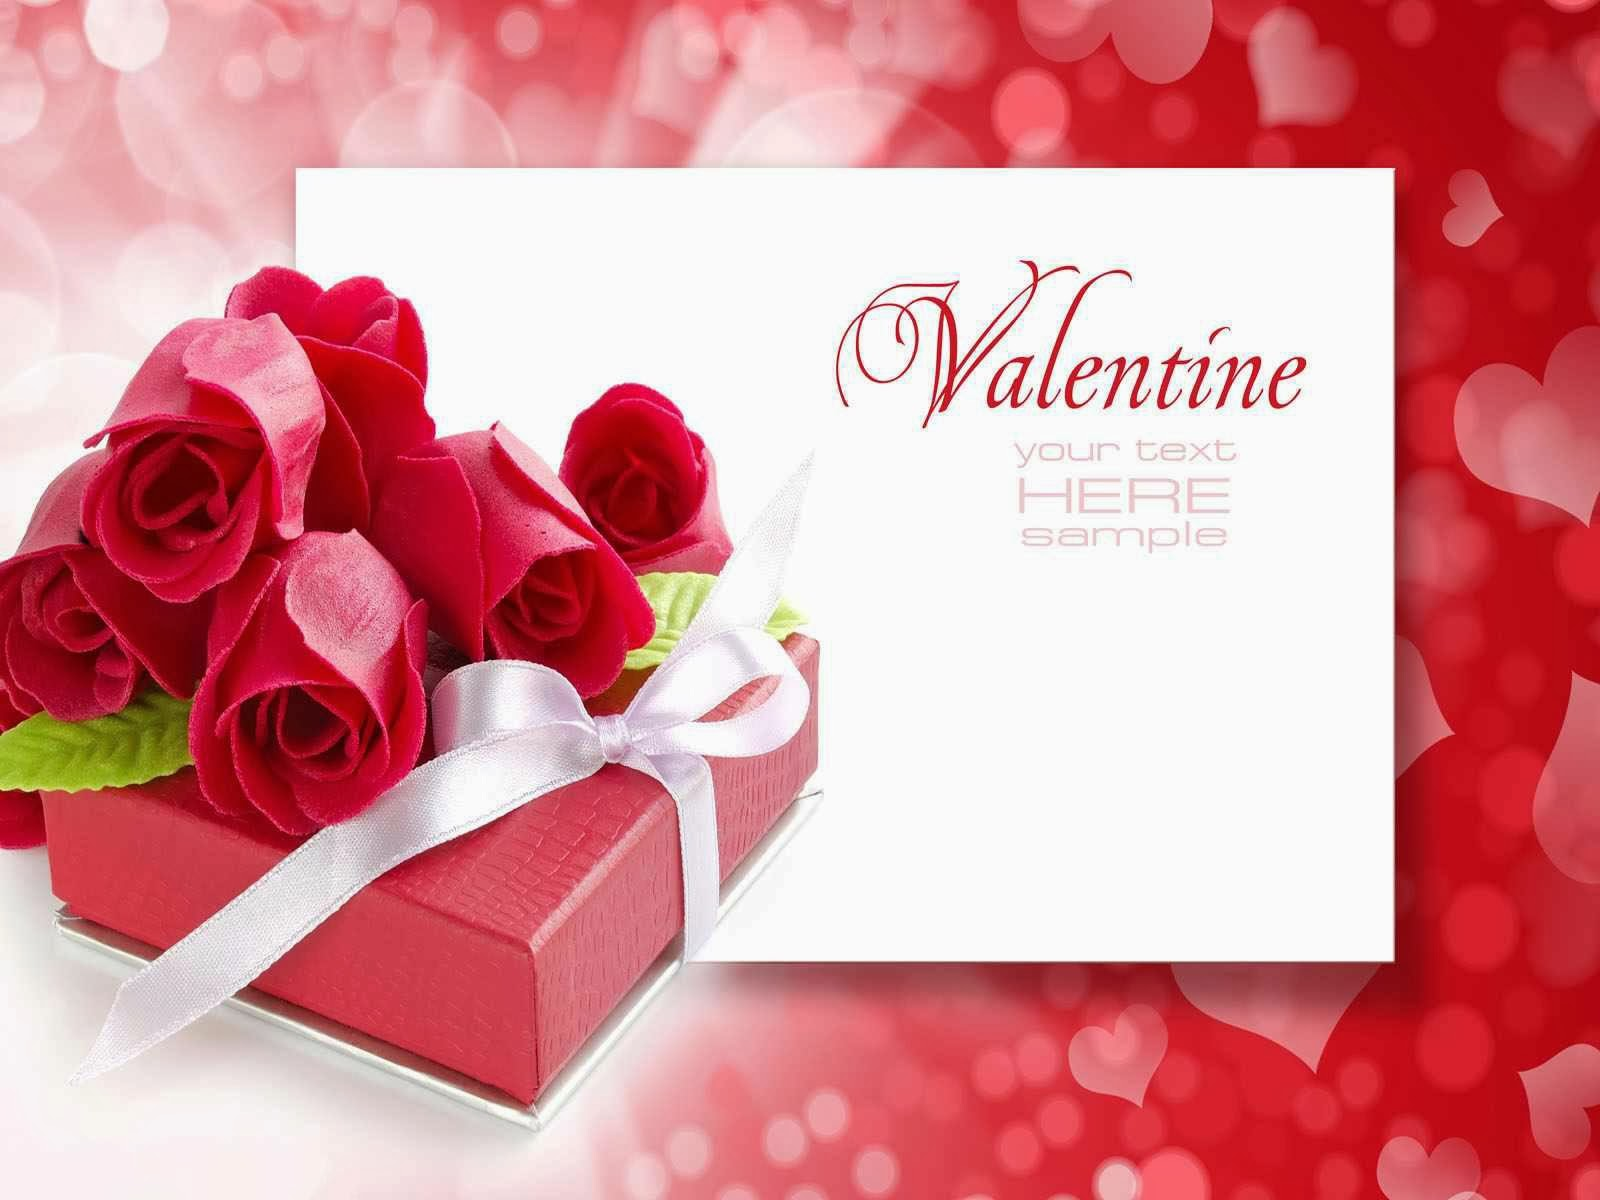 New Valentine's Day 2014 Quotes,Facebook Status,SMS,Wishes Messages